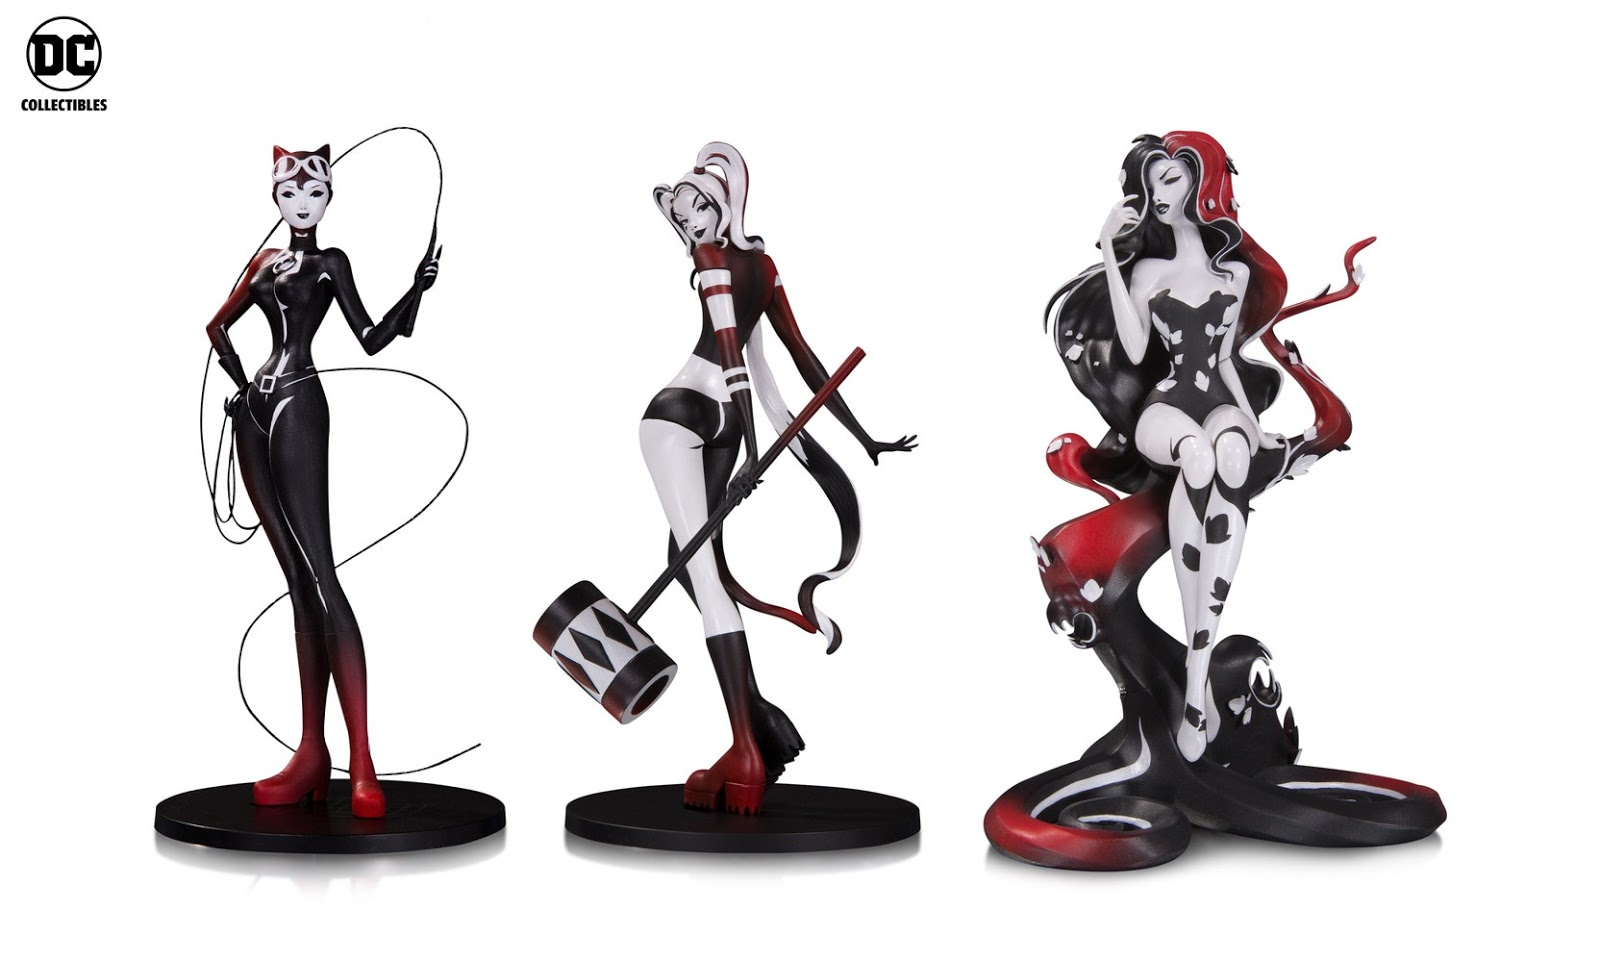 DC+Comics+Artists+Alley+Sho+Murase+Statue+Collection+by+DC+Collectibles+%281%29.jpg